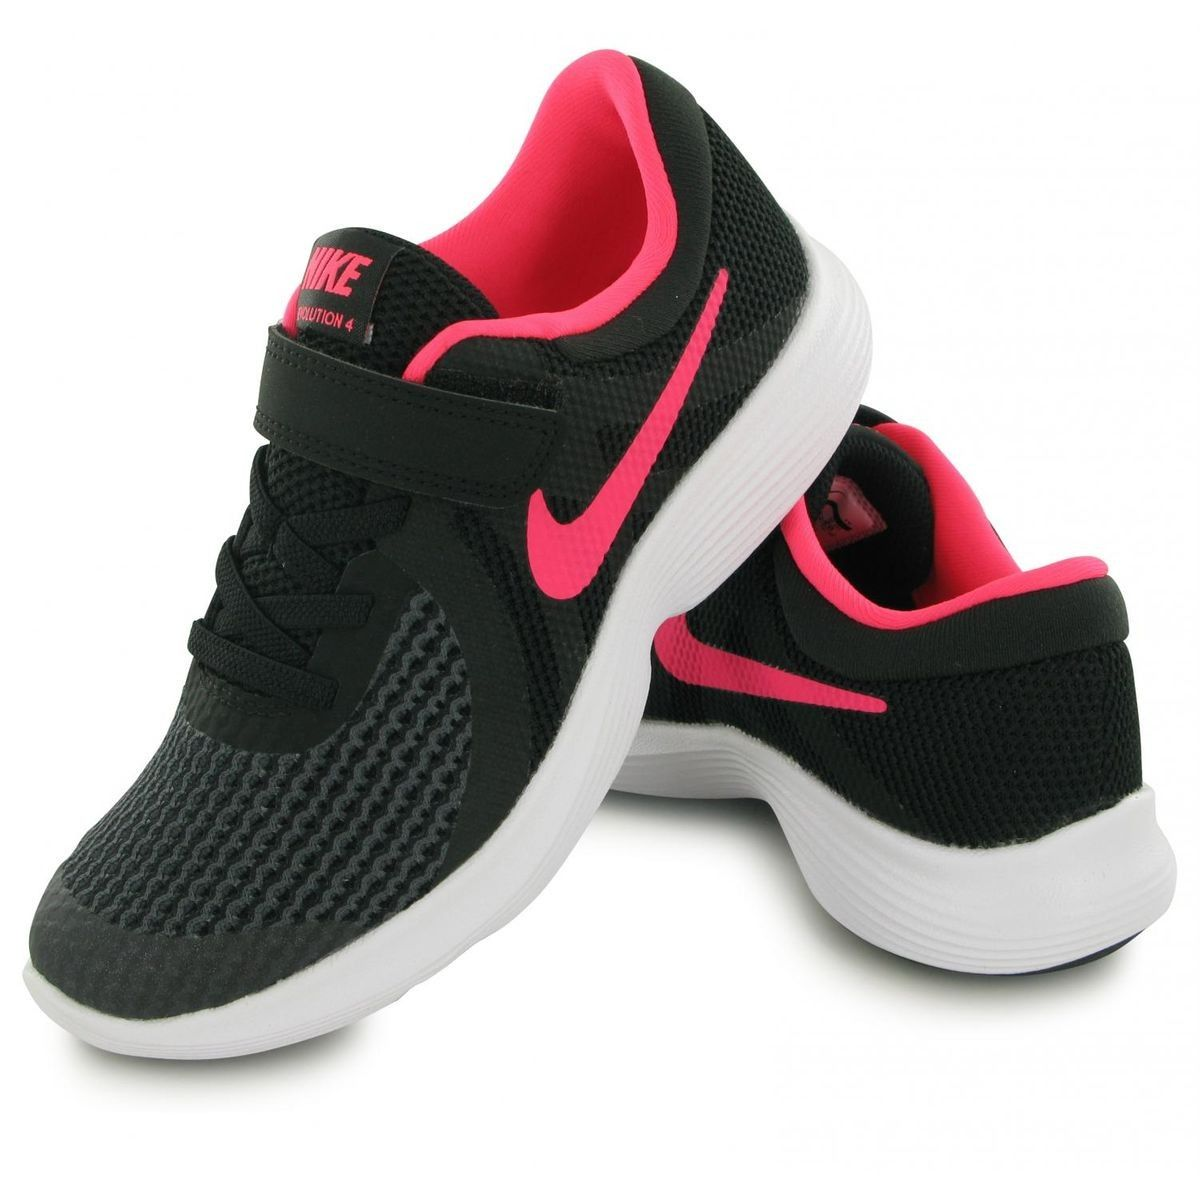 chaussure fille 32 nike